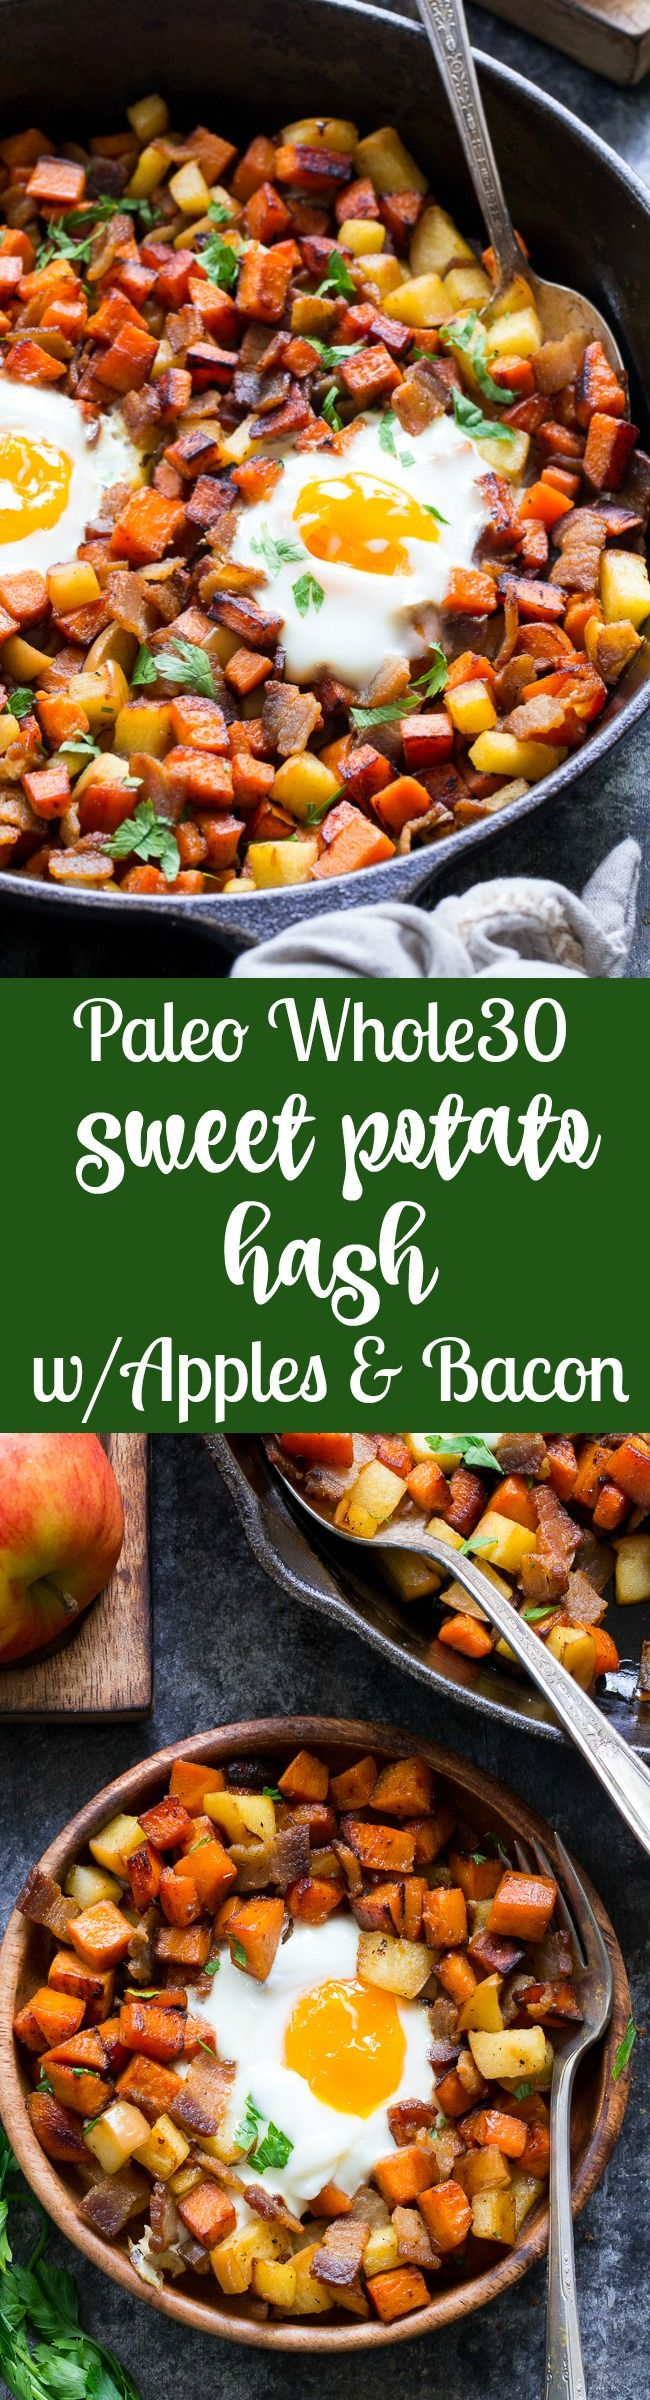 Sweet and savory Paleo Sweet Potato Hash with Apples and Bacon that's easy, fast, delicious, healthy and Whole30 friendly!